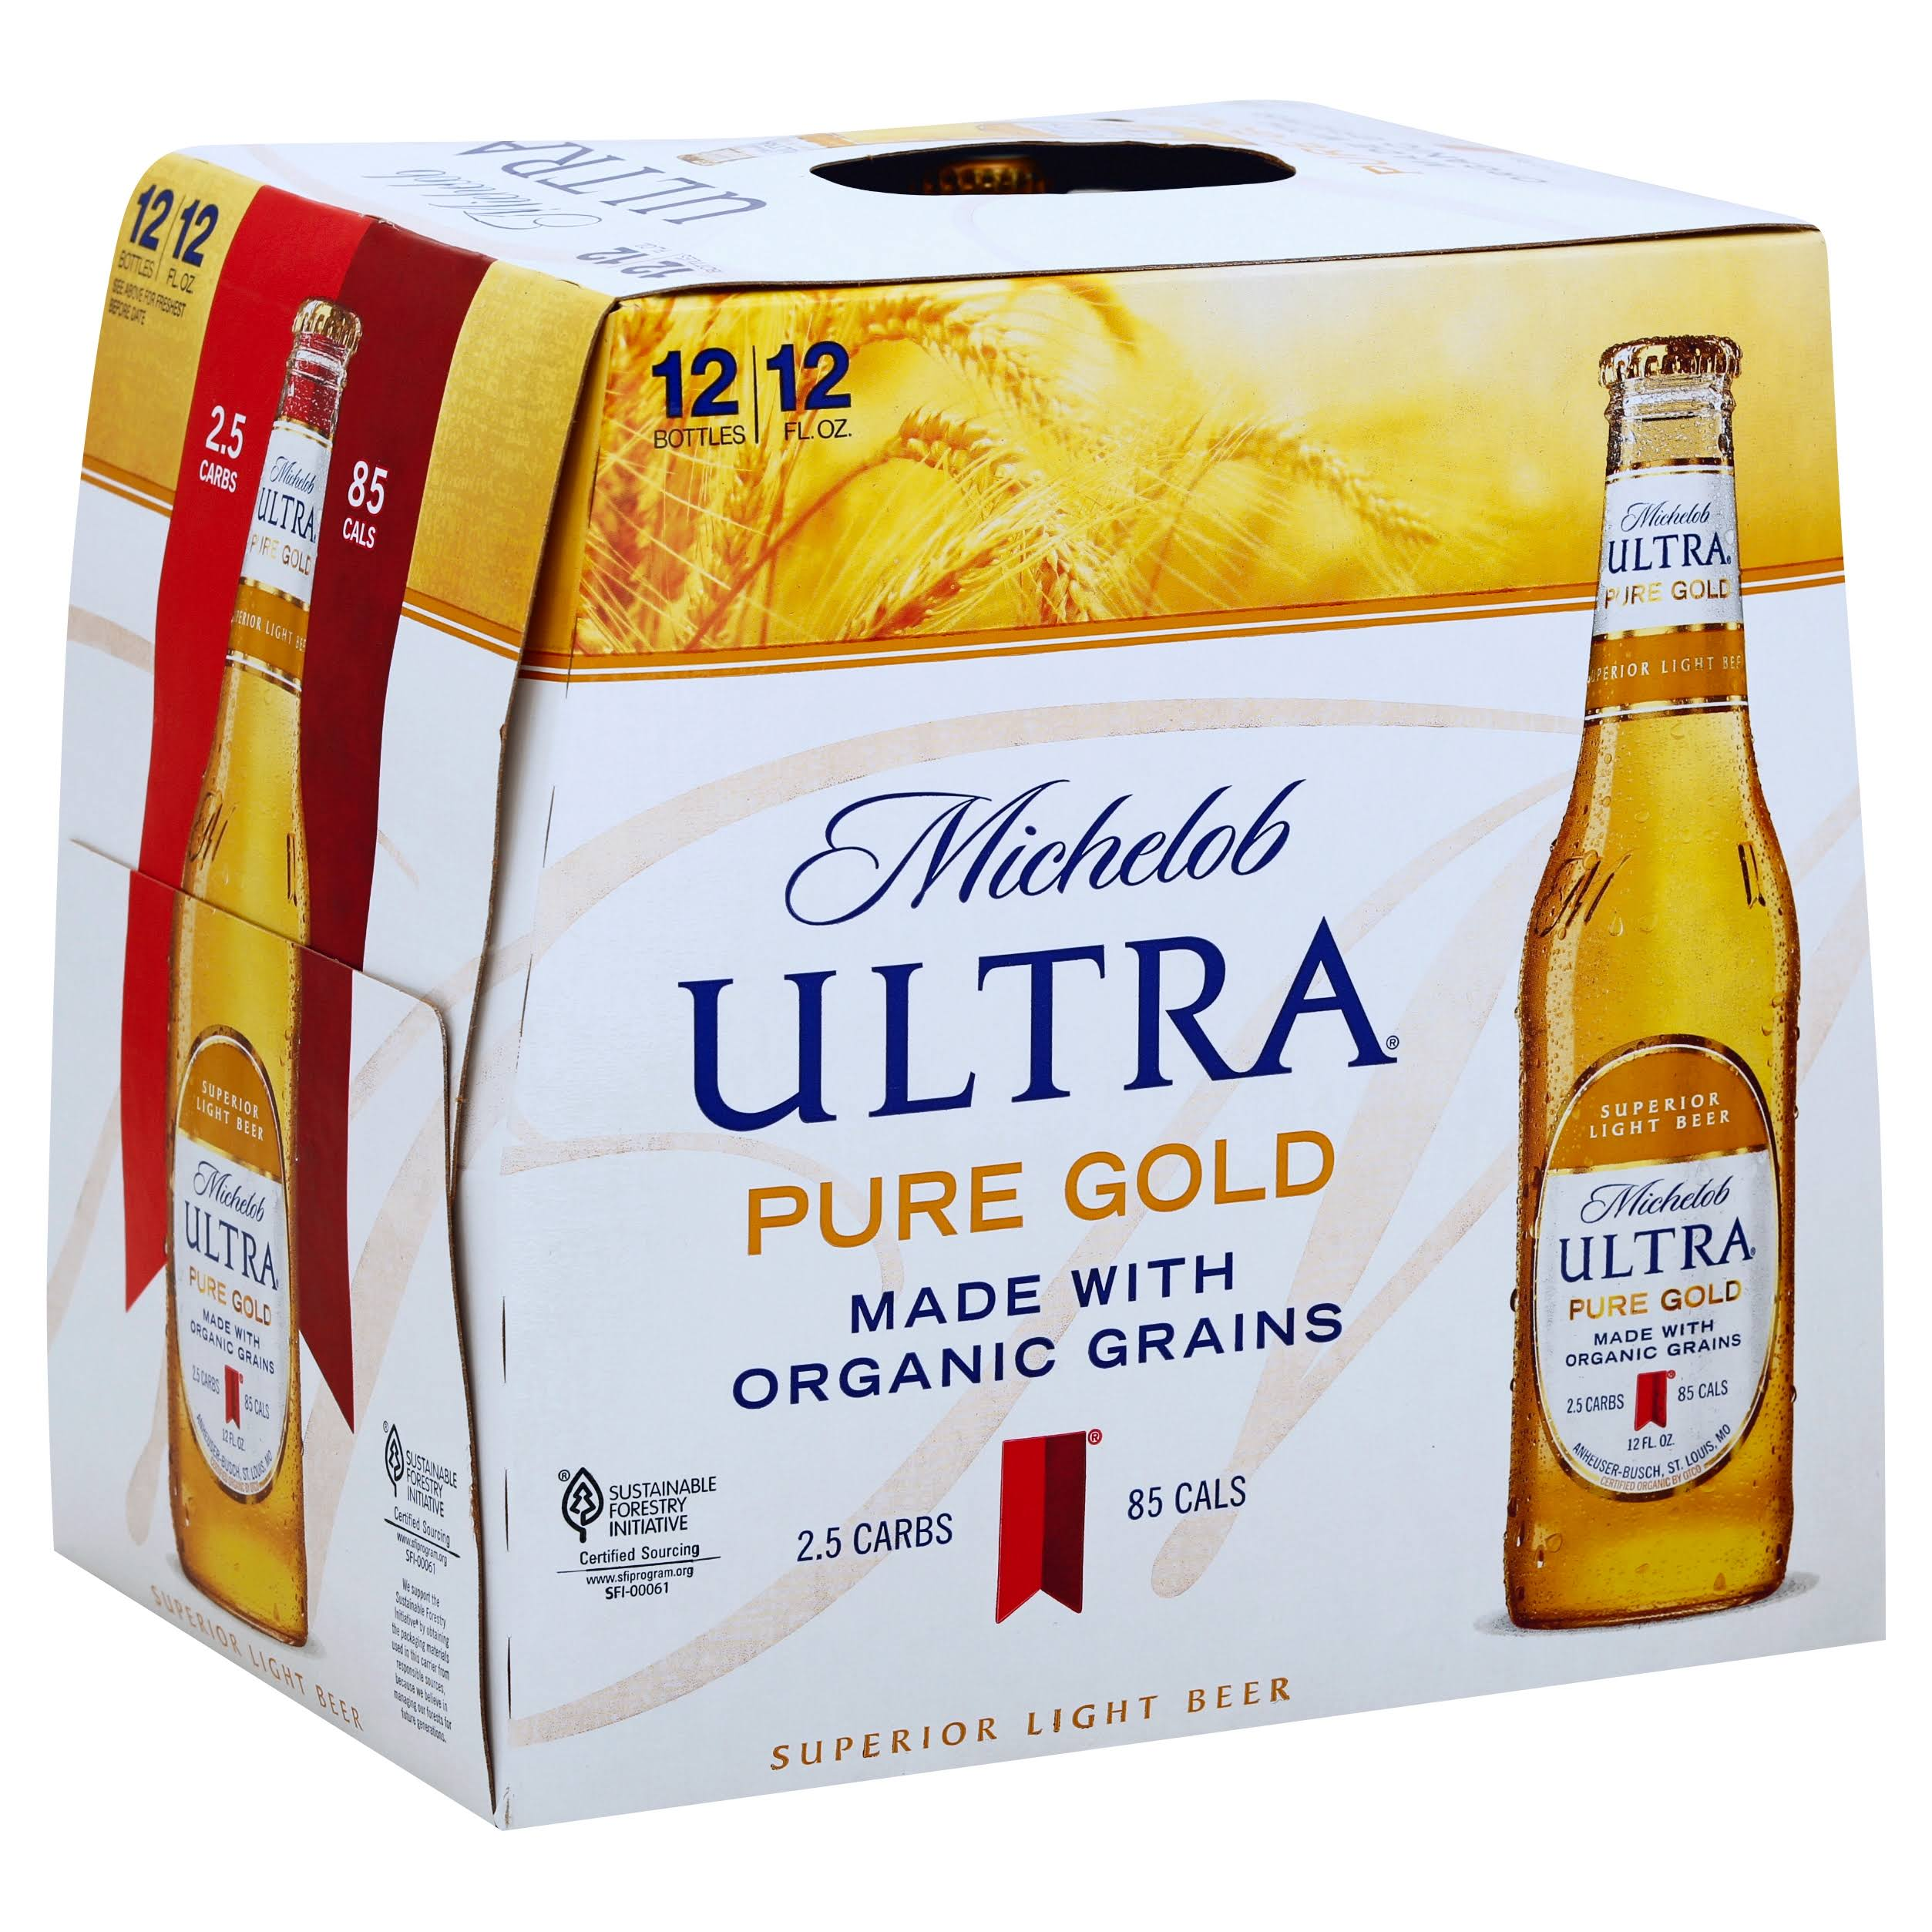 Michelob Ultra Ultra Beer, Pure Gold - 12 pack, 12 fl oz bottles